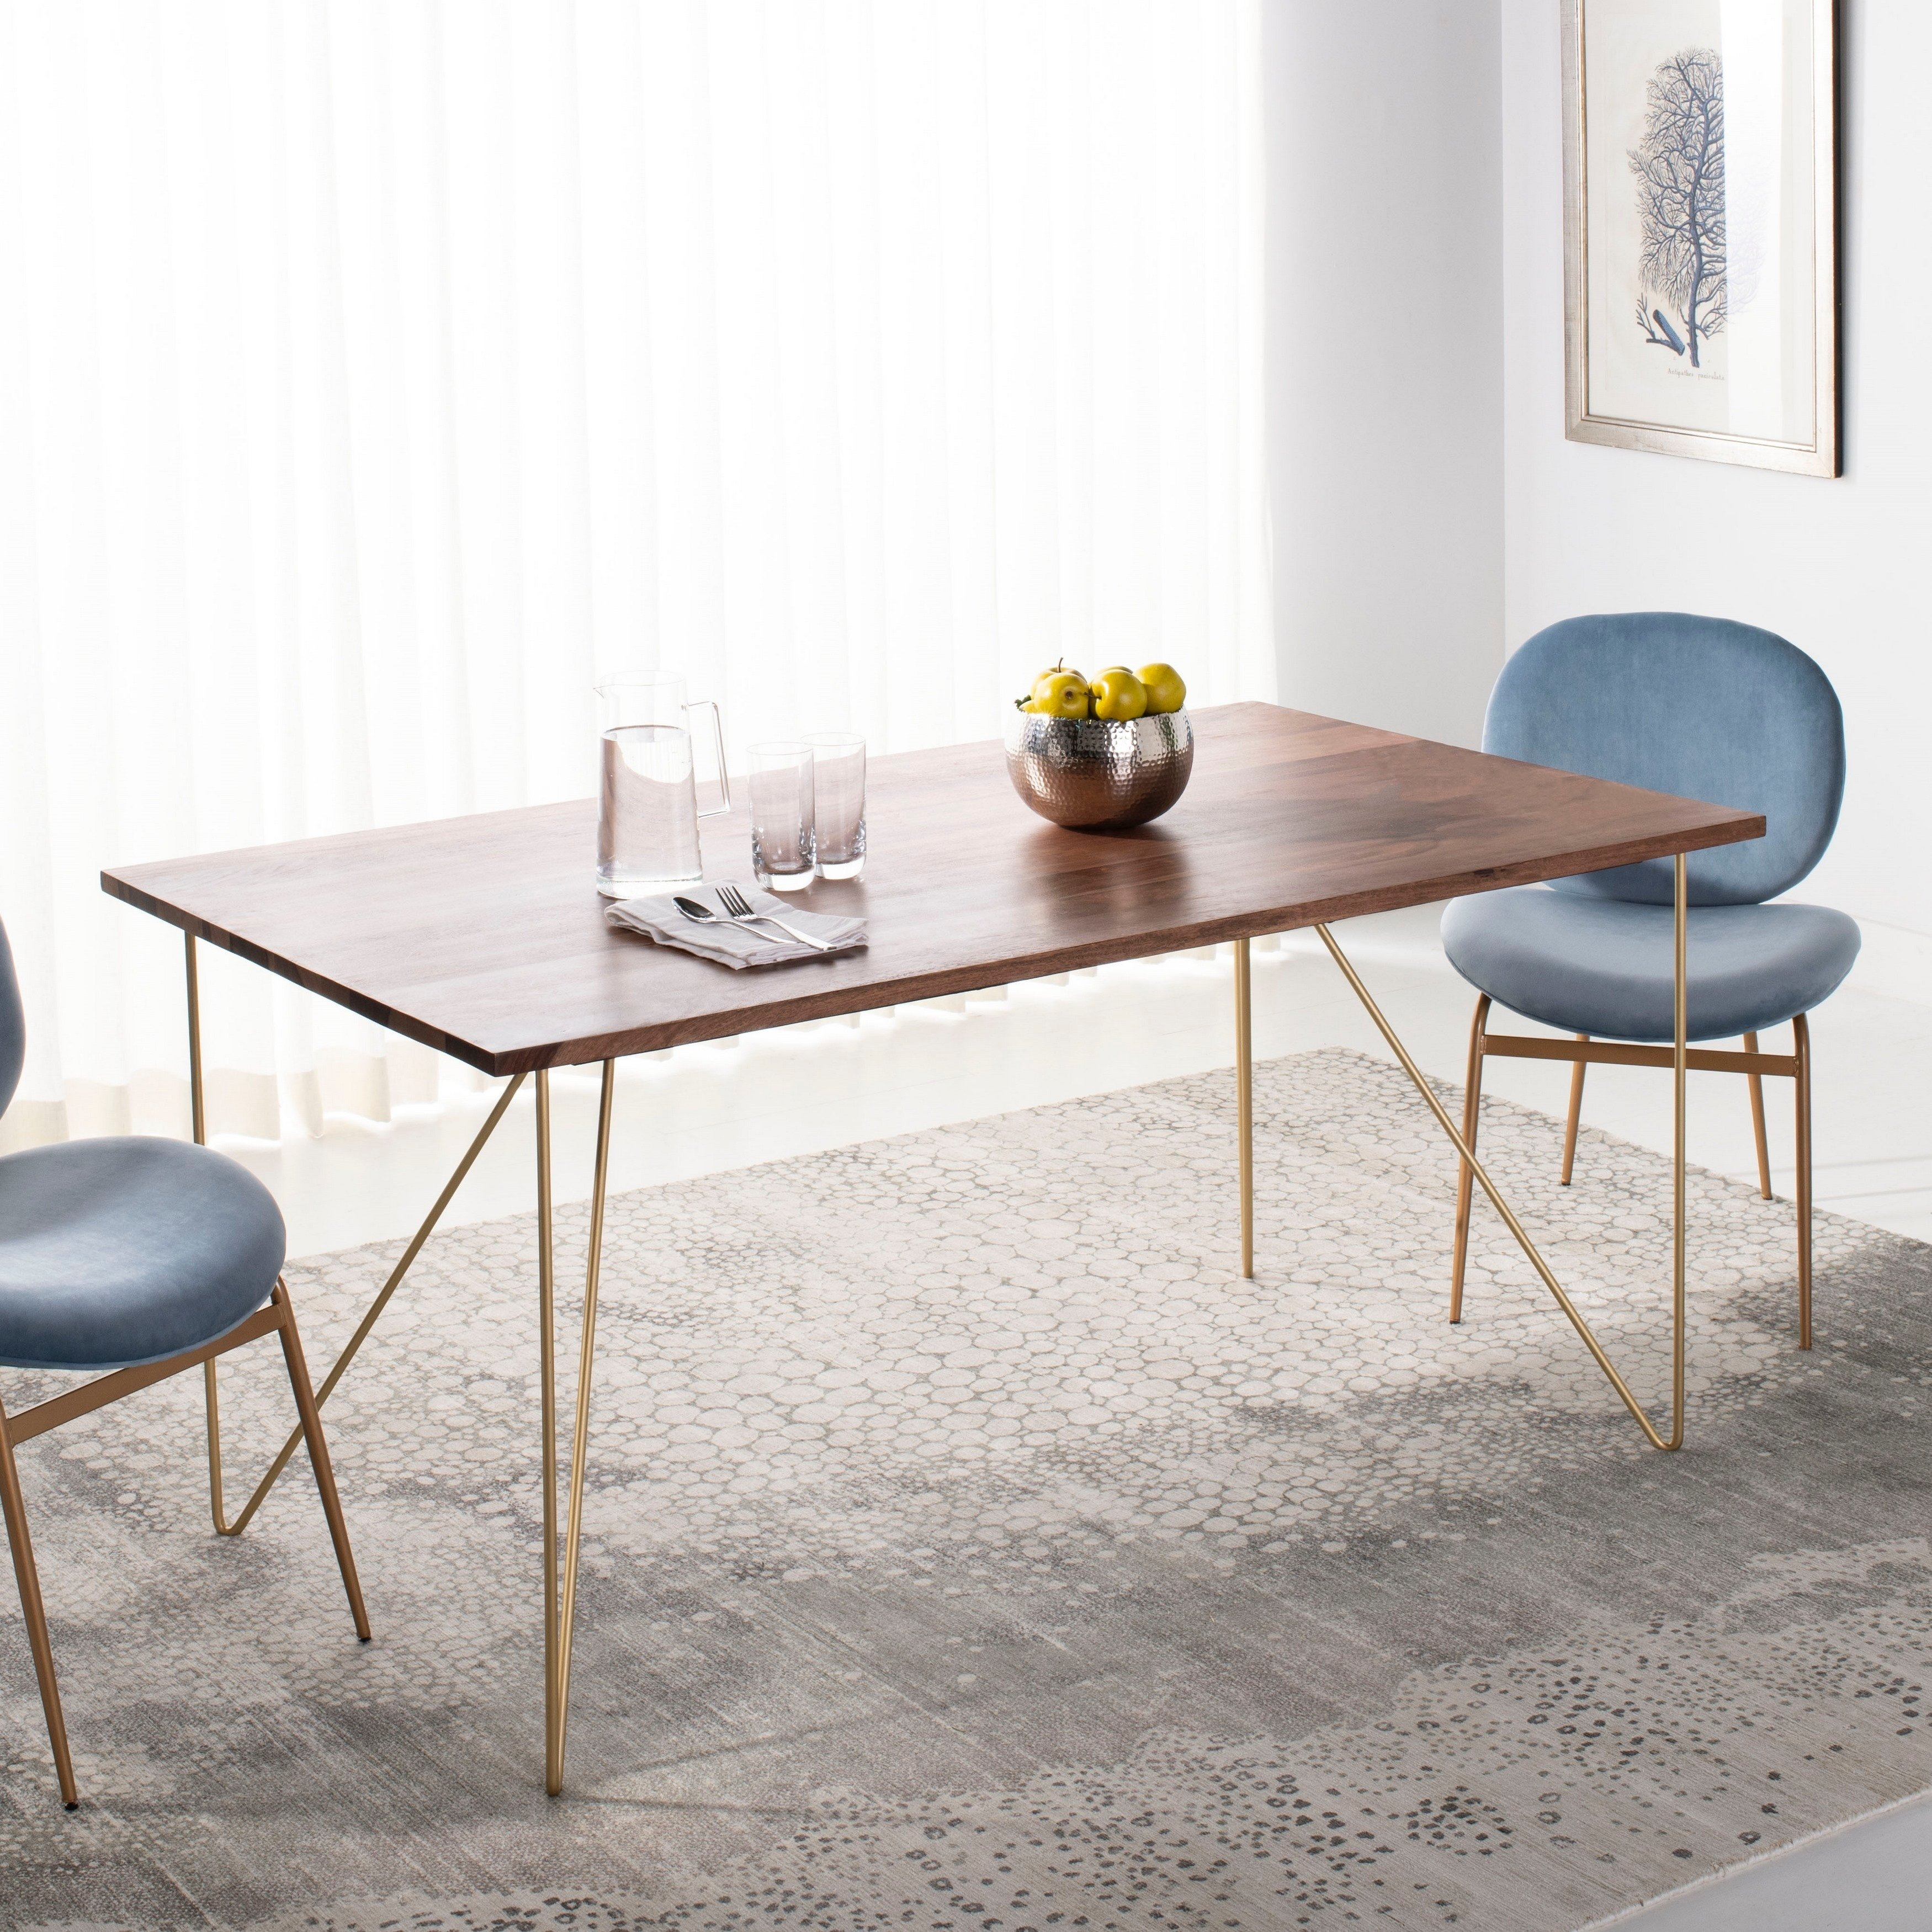 Safavieh Couture Captain Wood Dining Table Walnut Brass 62 9